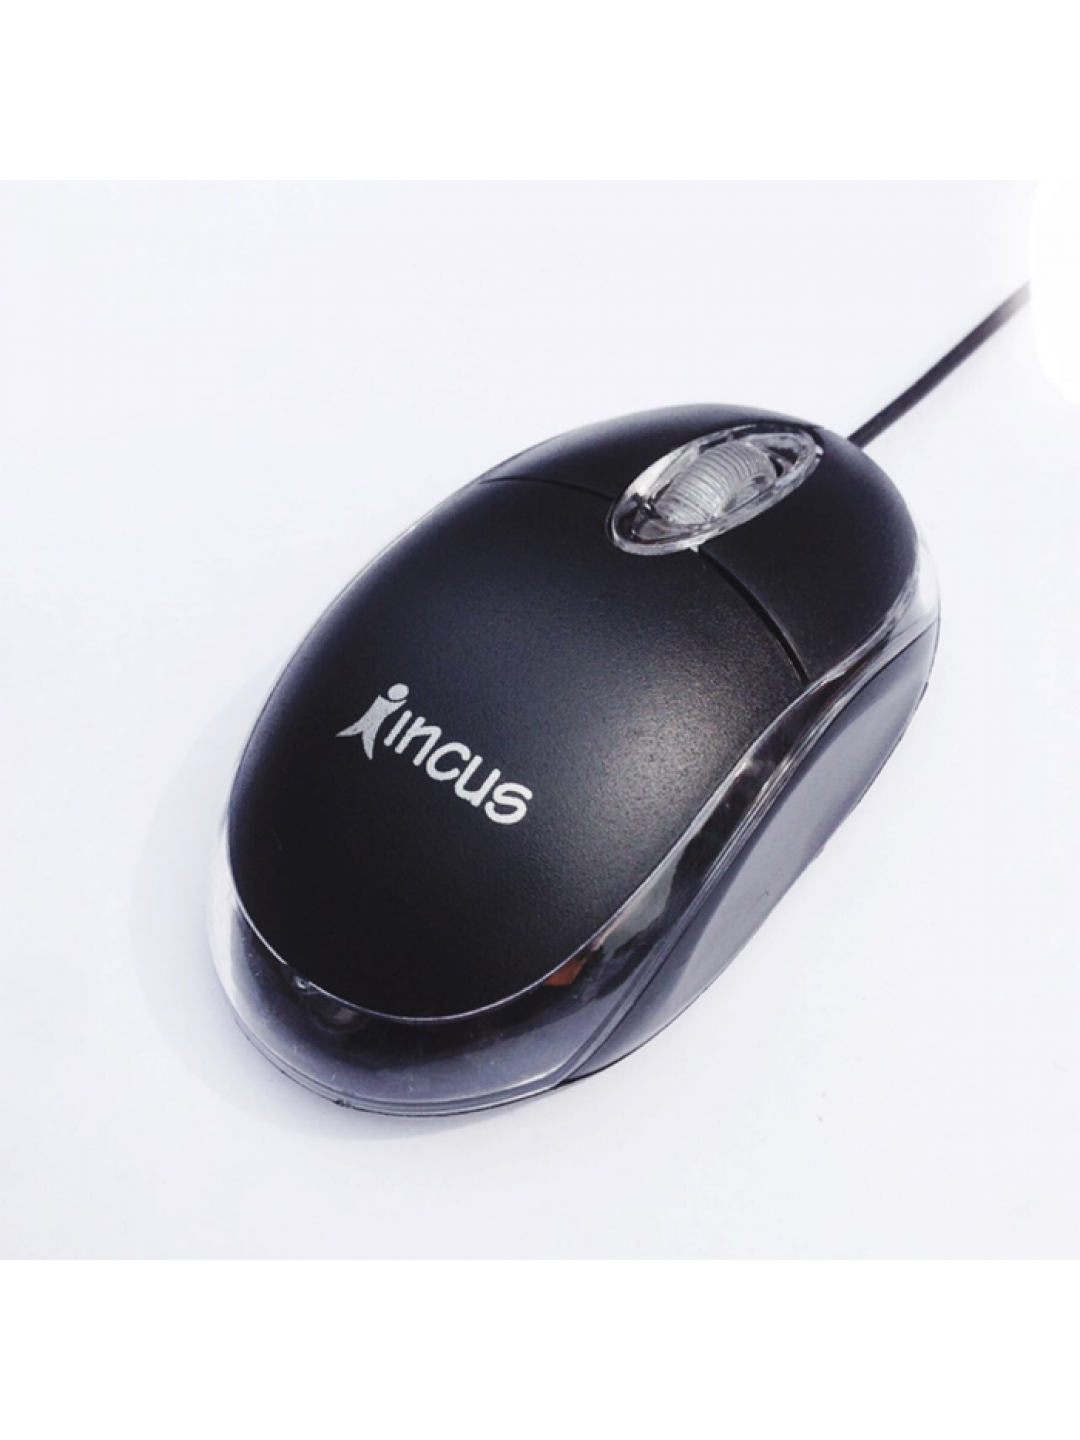 MOUSE USB second